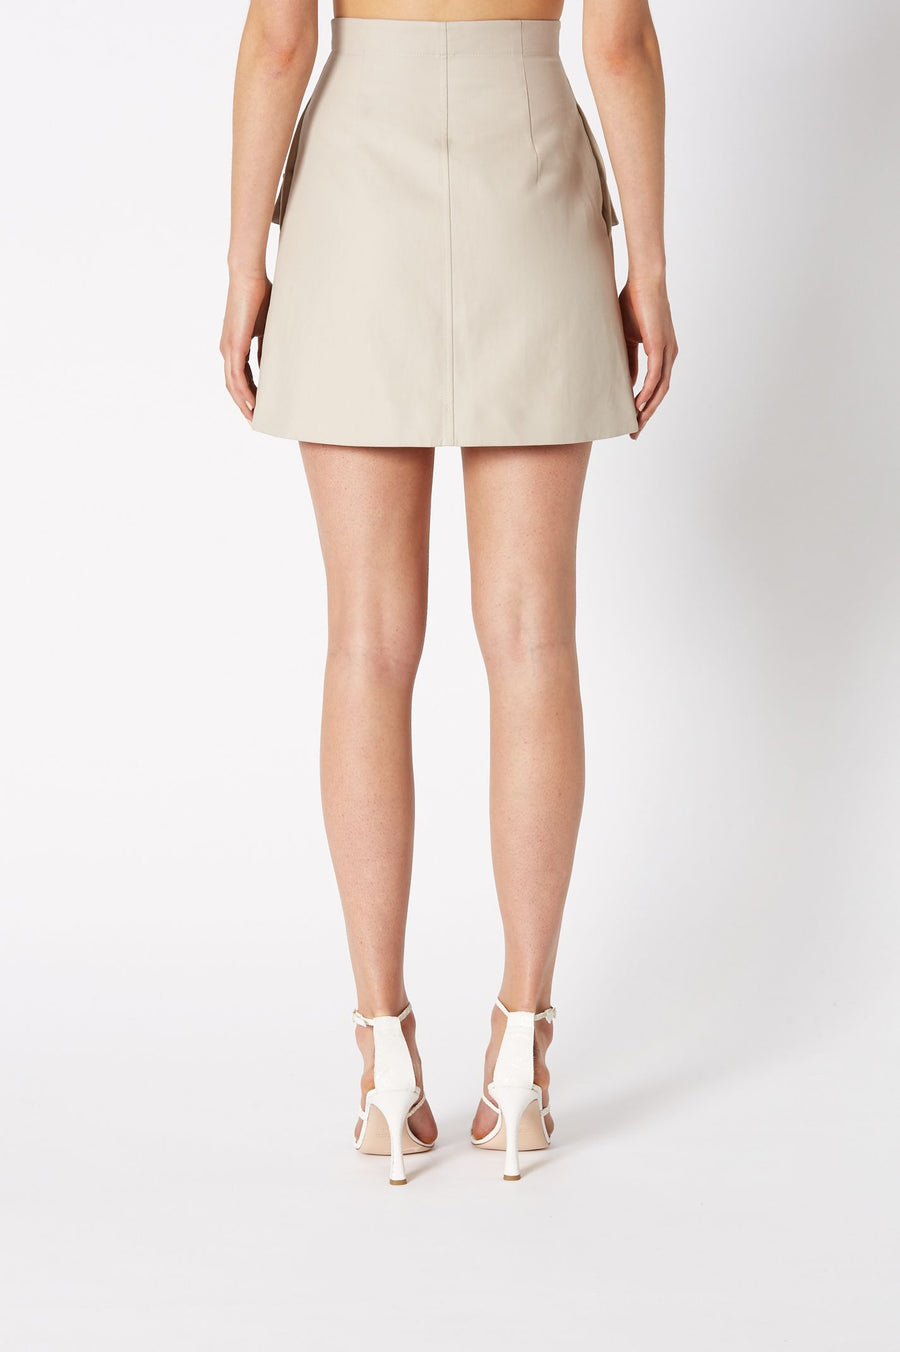 POCKET SKIRT FEATURING FRONT POCKETS WITH SIDE POCKETS ALSO, HIGH WAISTED A LINE SHORT STYLE, COLOR TRENCH